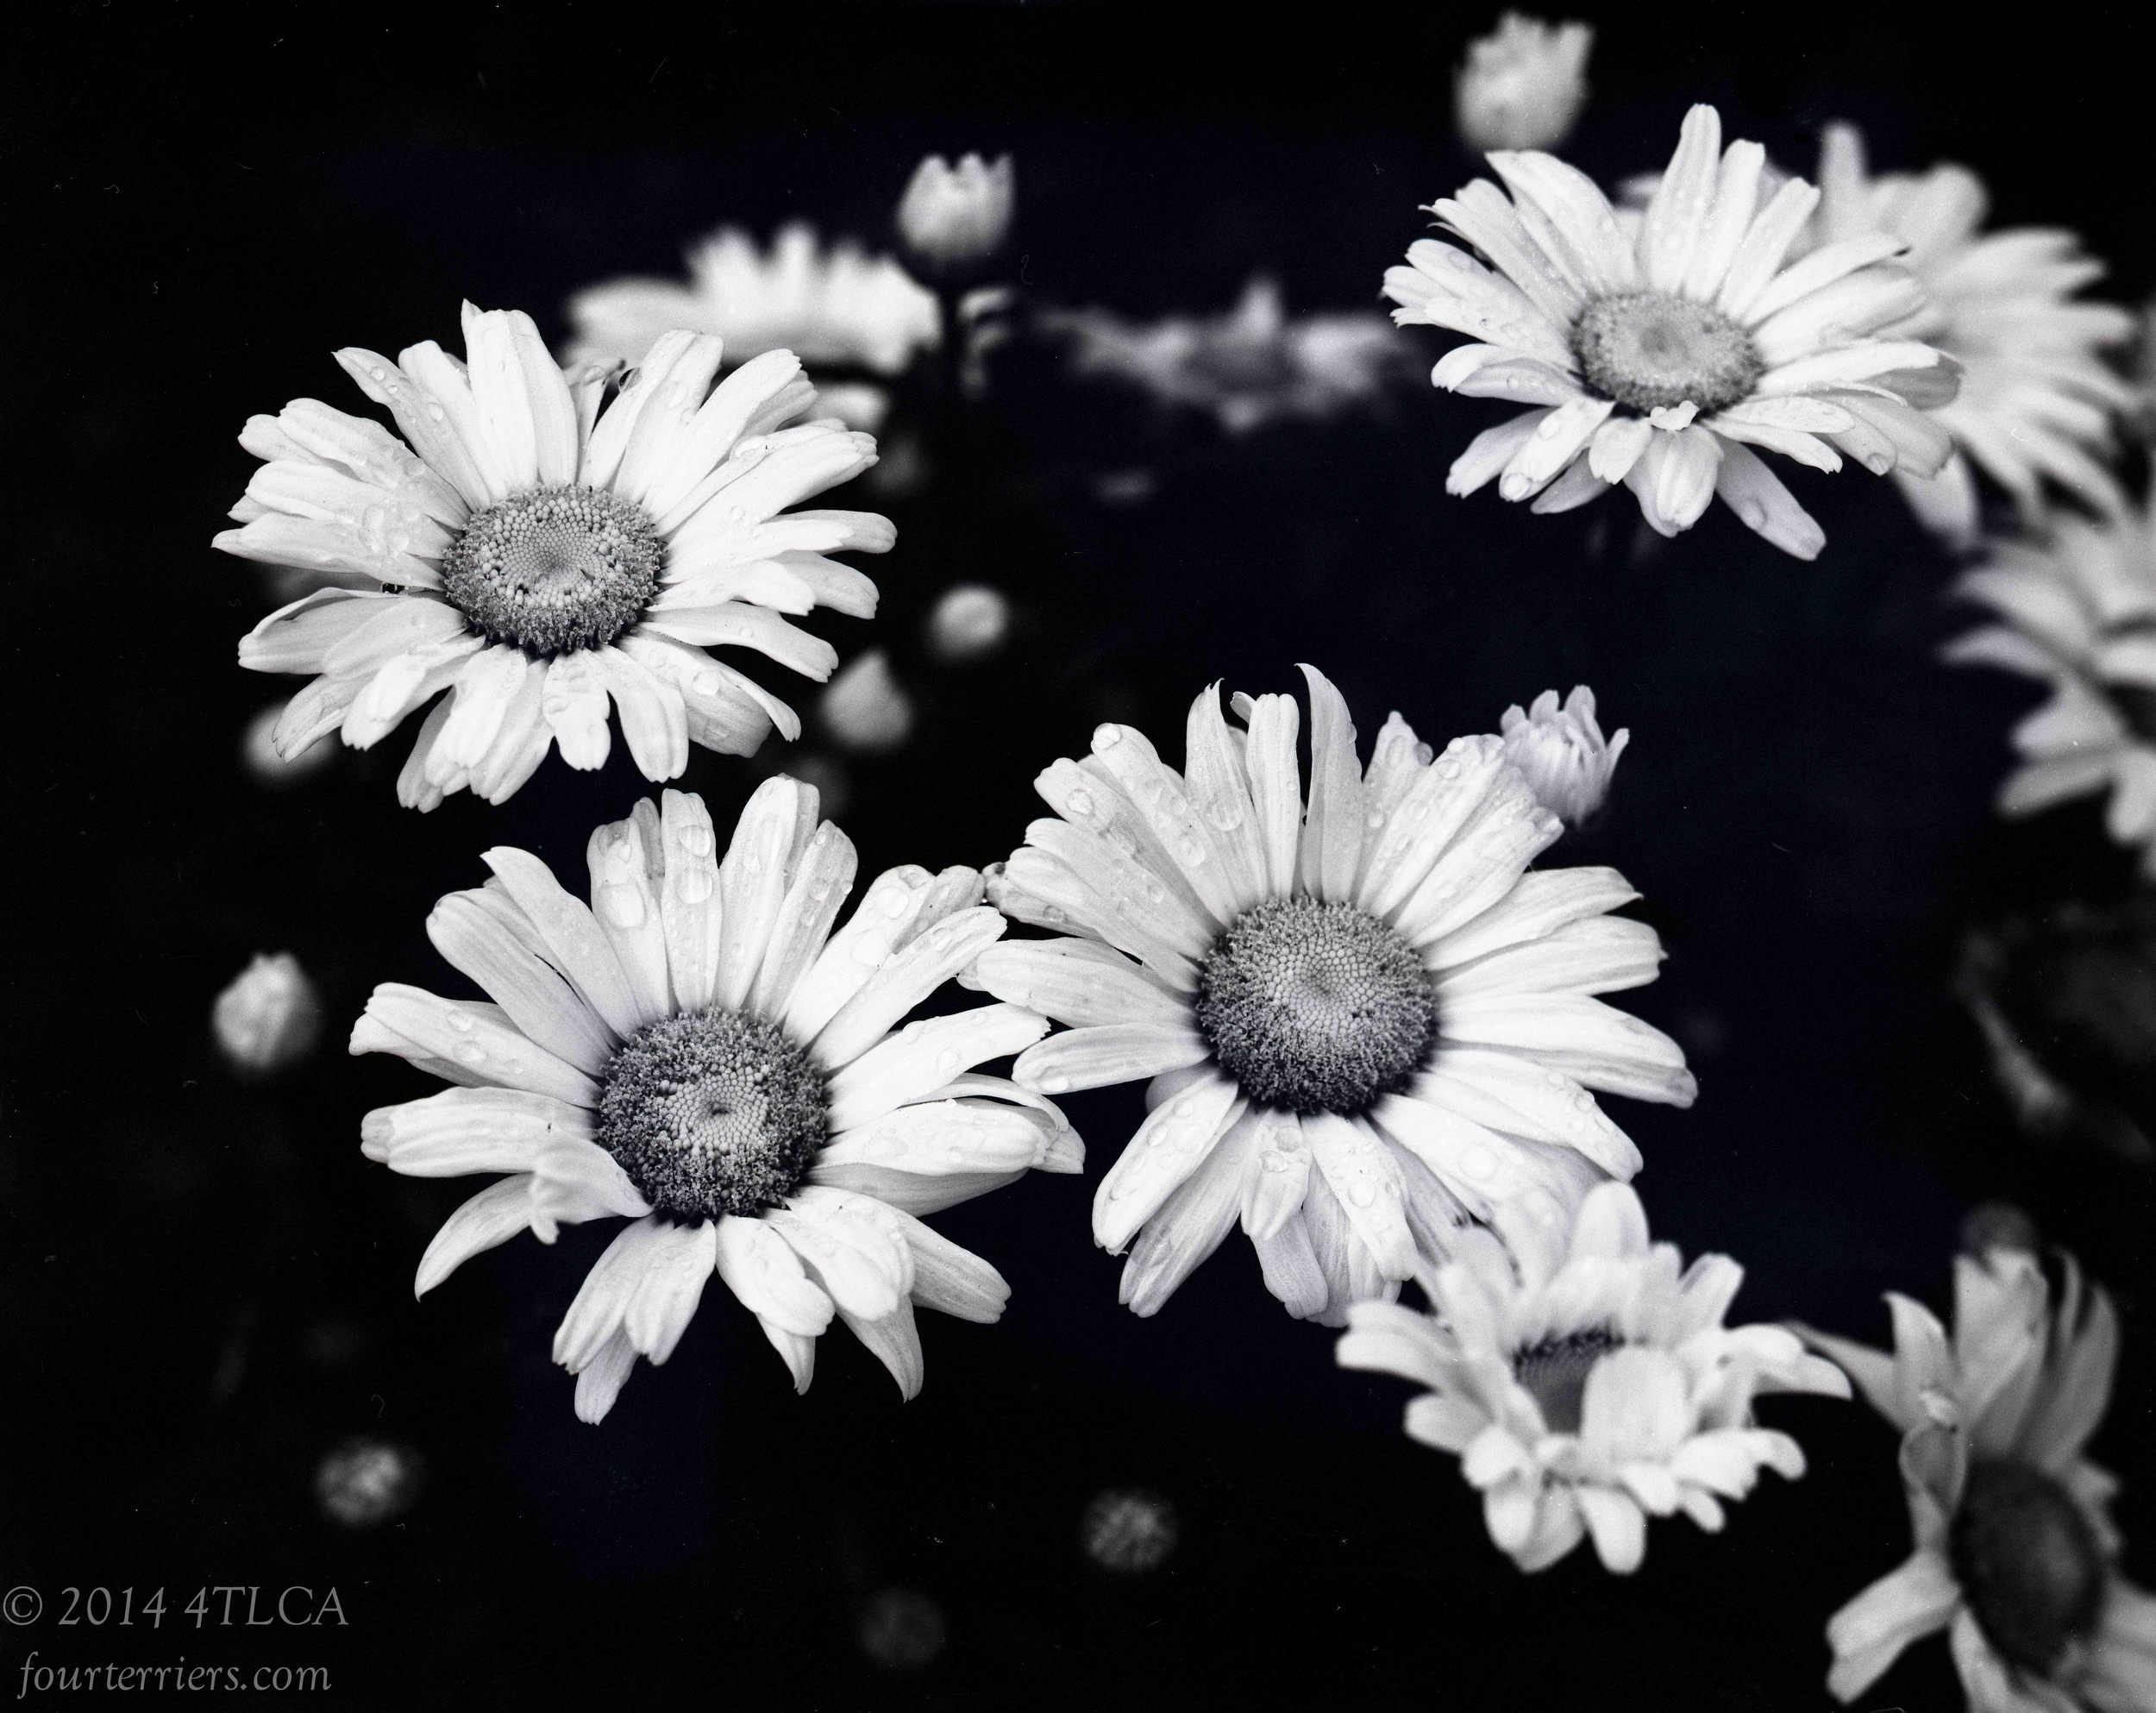 Daisies in Monochrome, 2014